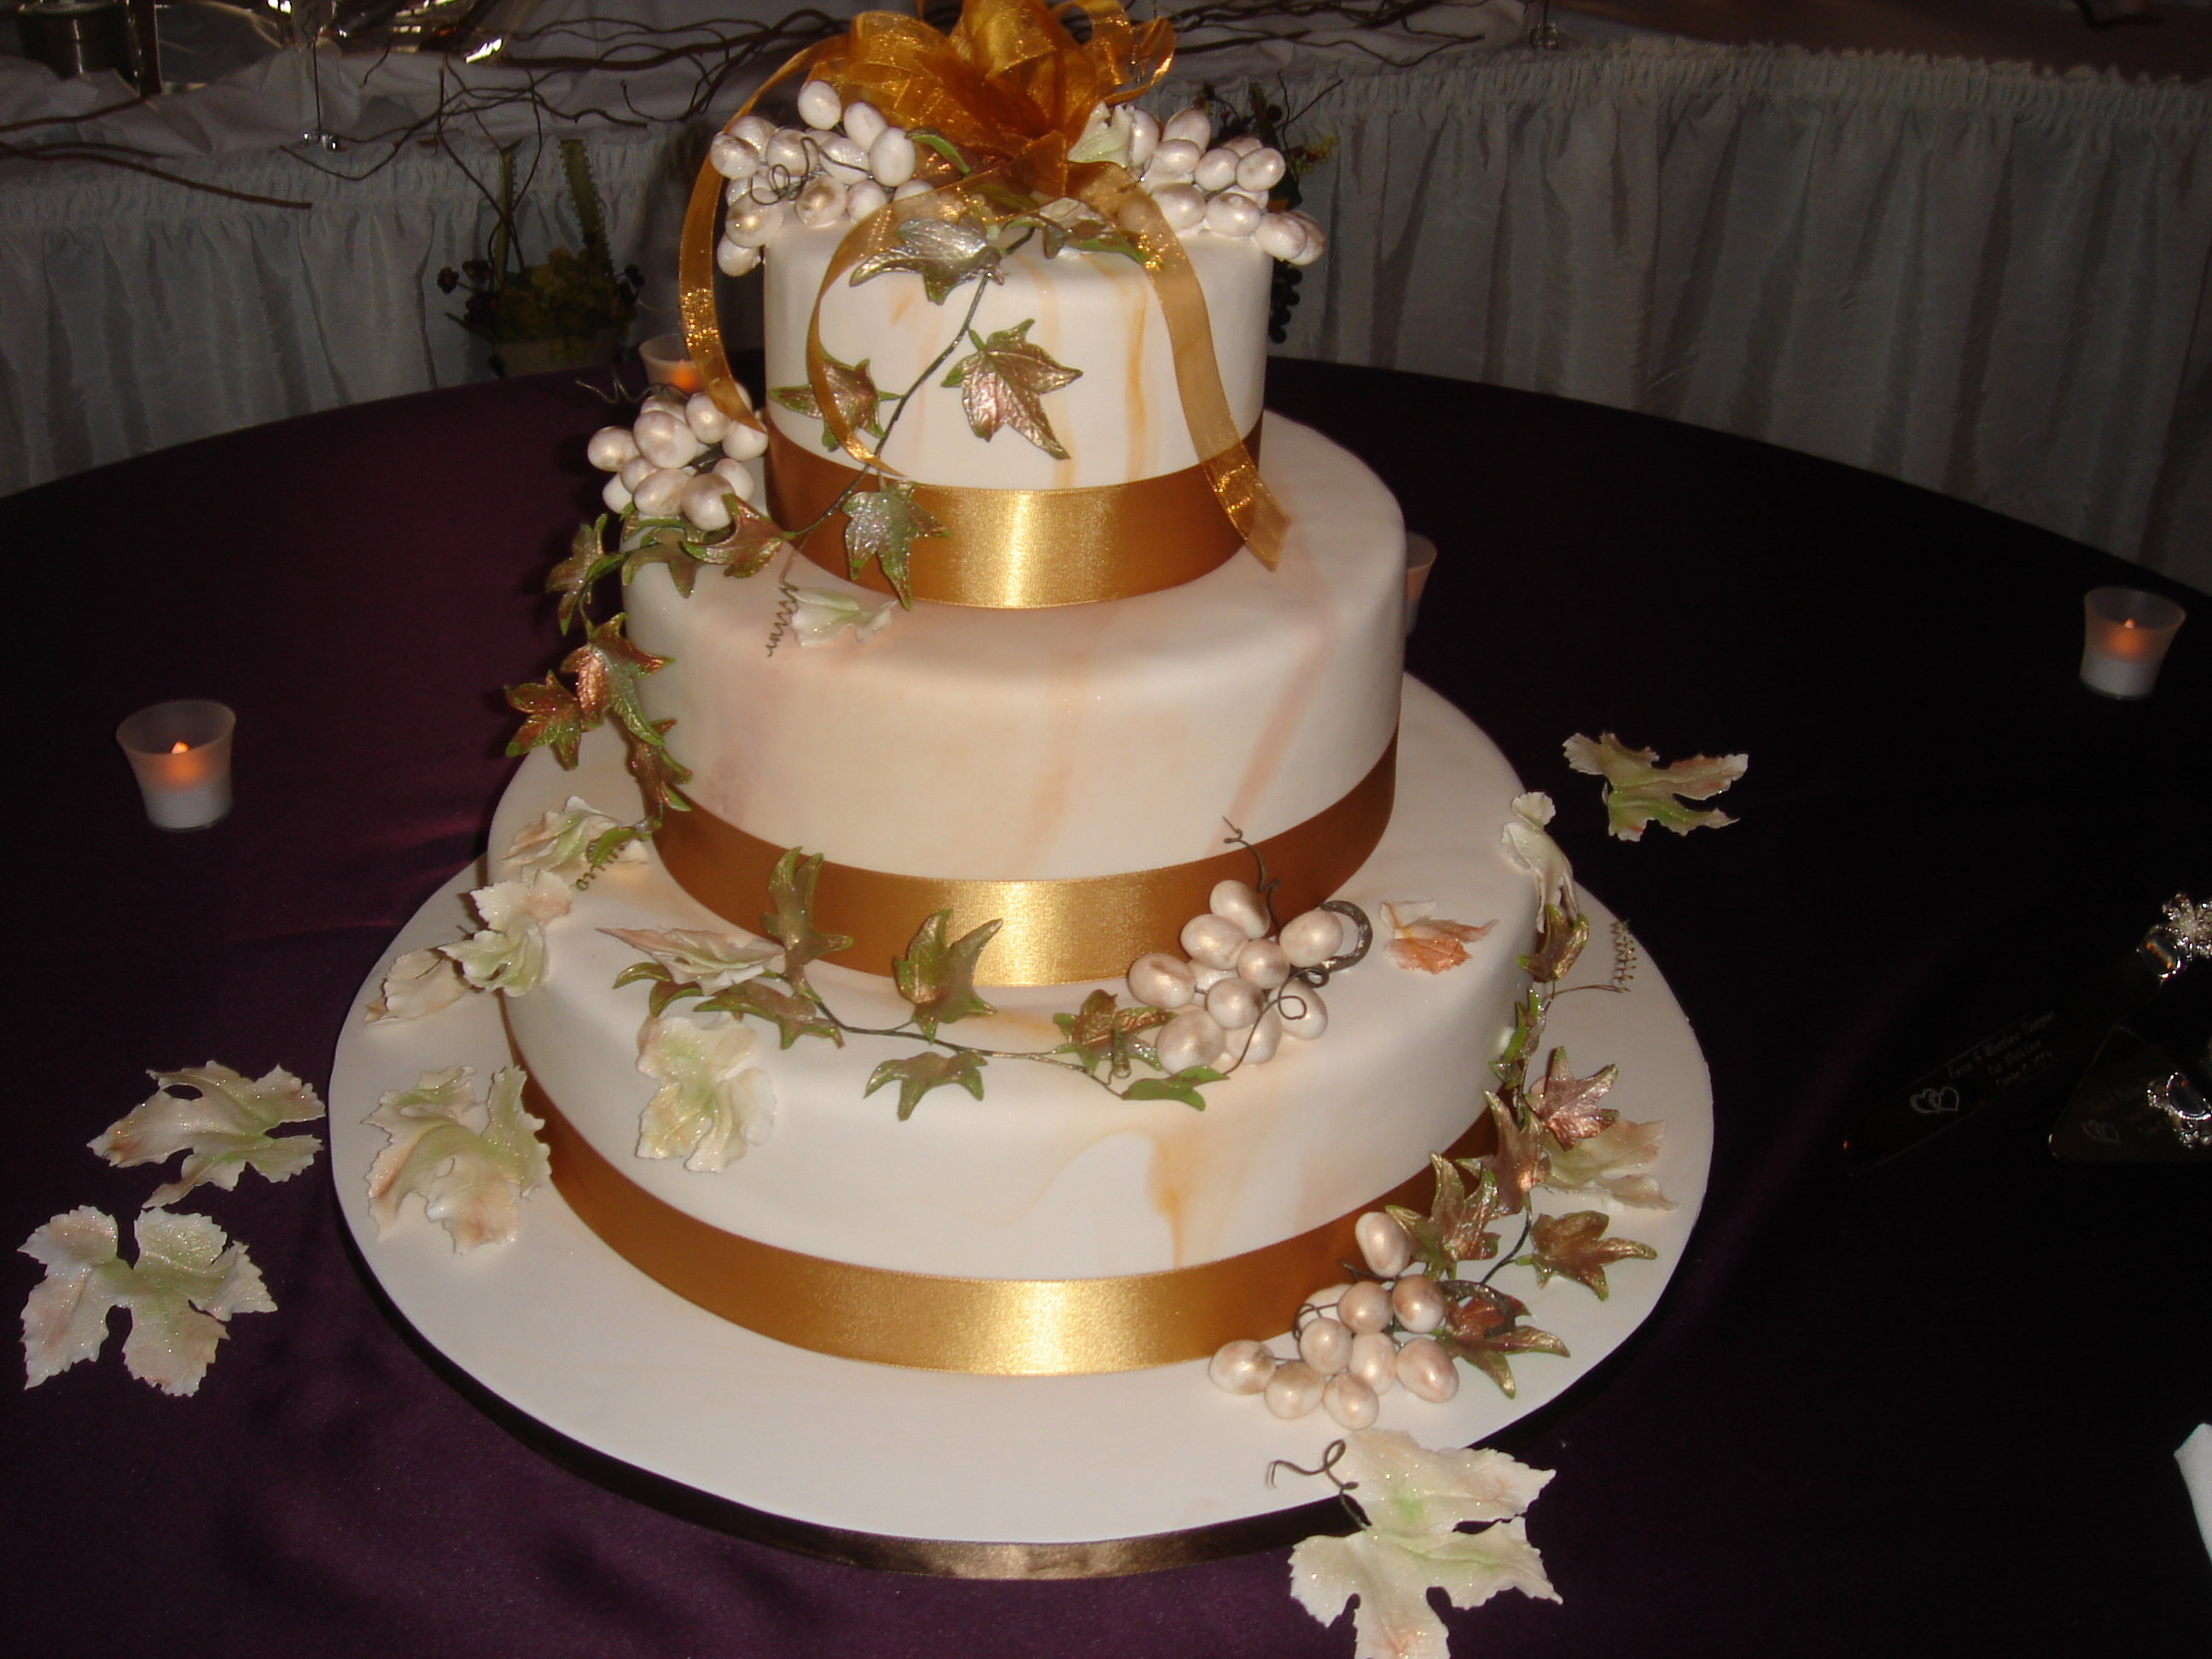 Flowers & Decor, Cakes, white, gold, cake, Vineyard, Ribbon Wedding Cakes, Vineyard Wedding Cakes, Theme, Ribbon, Topper, Grapes, Leaves, The artful baker